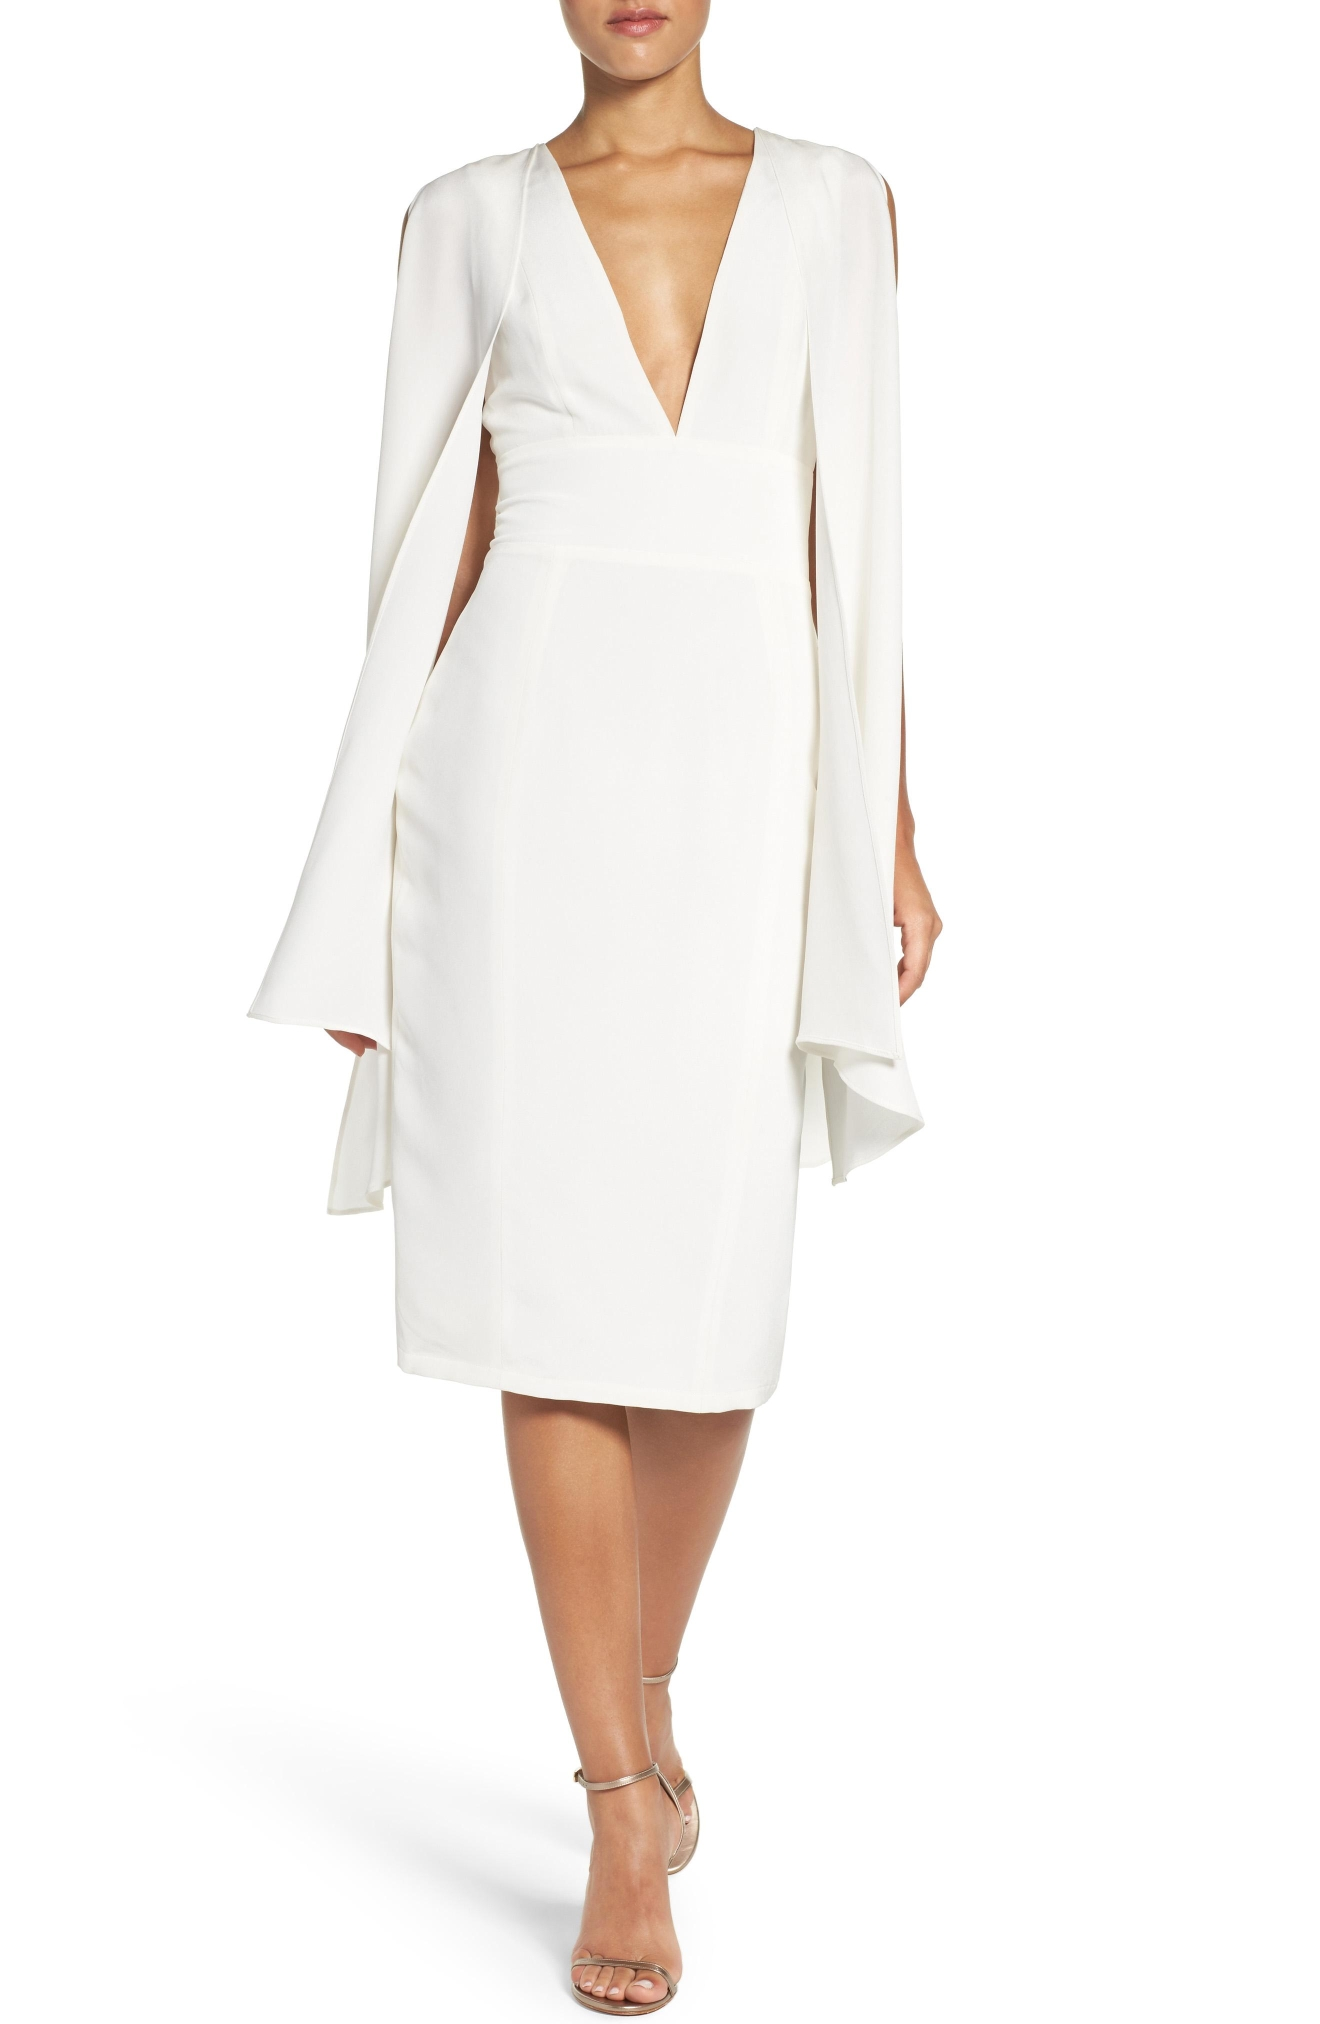 MISHA COLLECTION, 'Evona' Caped Silk Midi Dress, $350,  Nordstrom.com (Image: Courtesy Nordstrom)